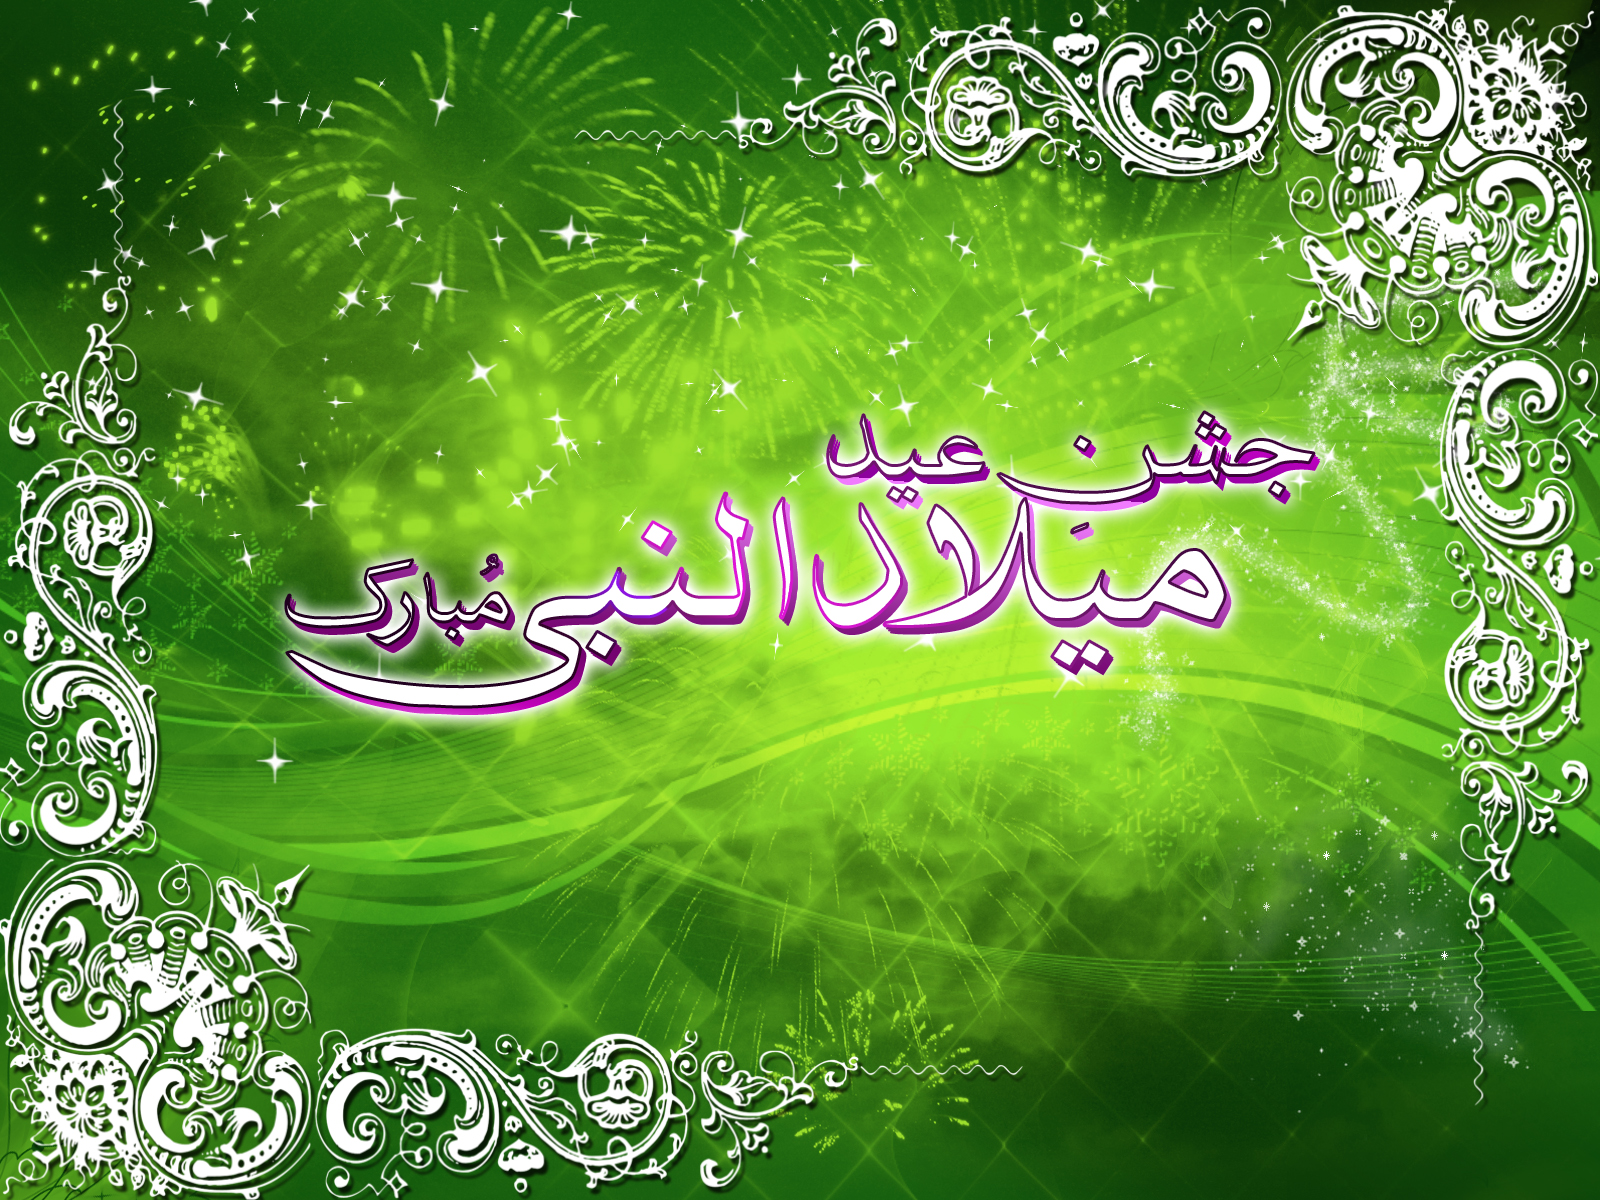 12 Rabi-ul-awal sms in urdu for muslim